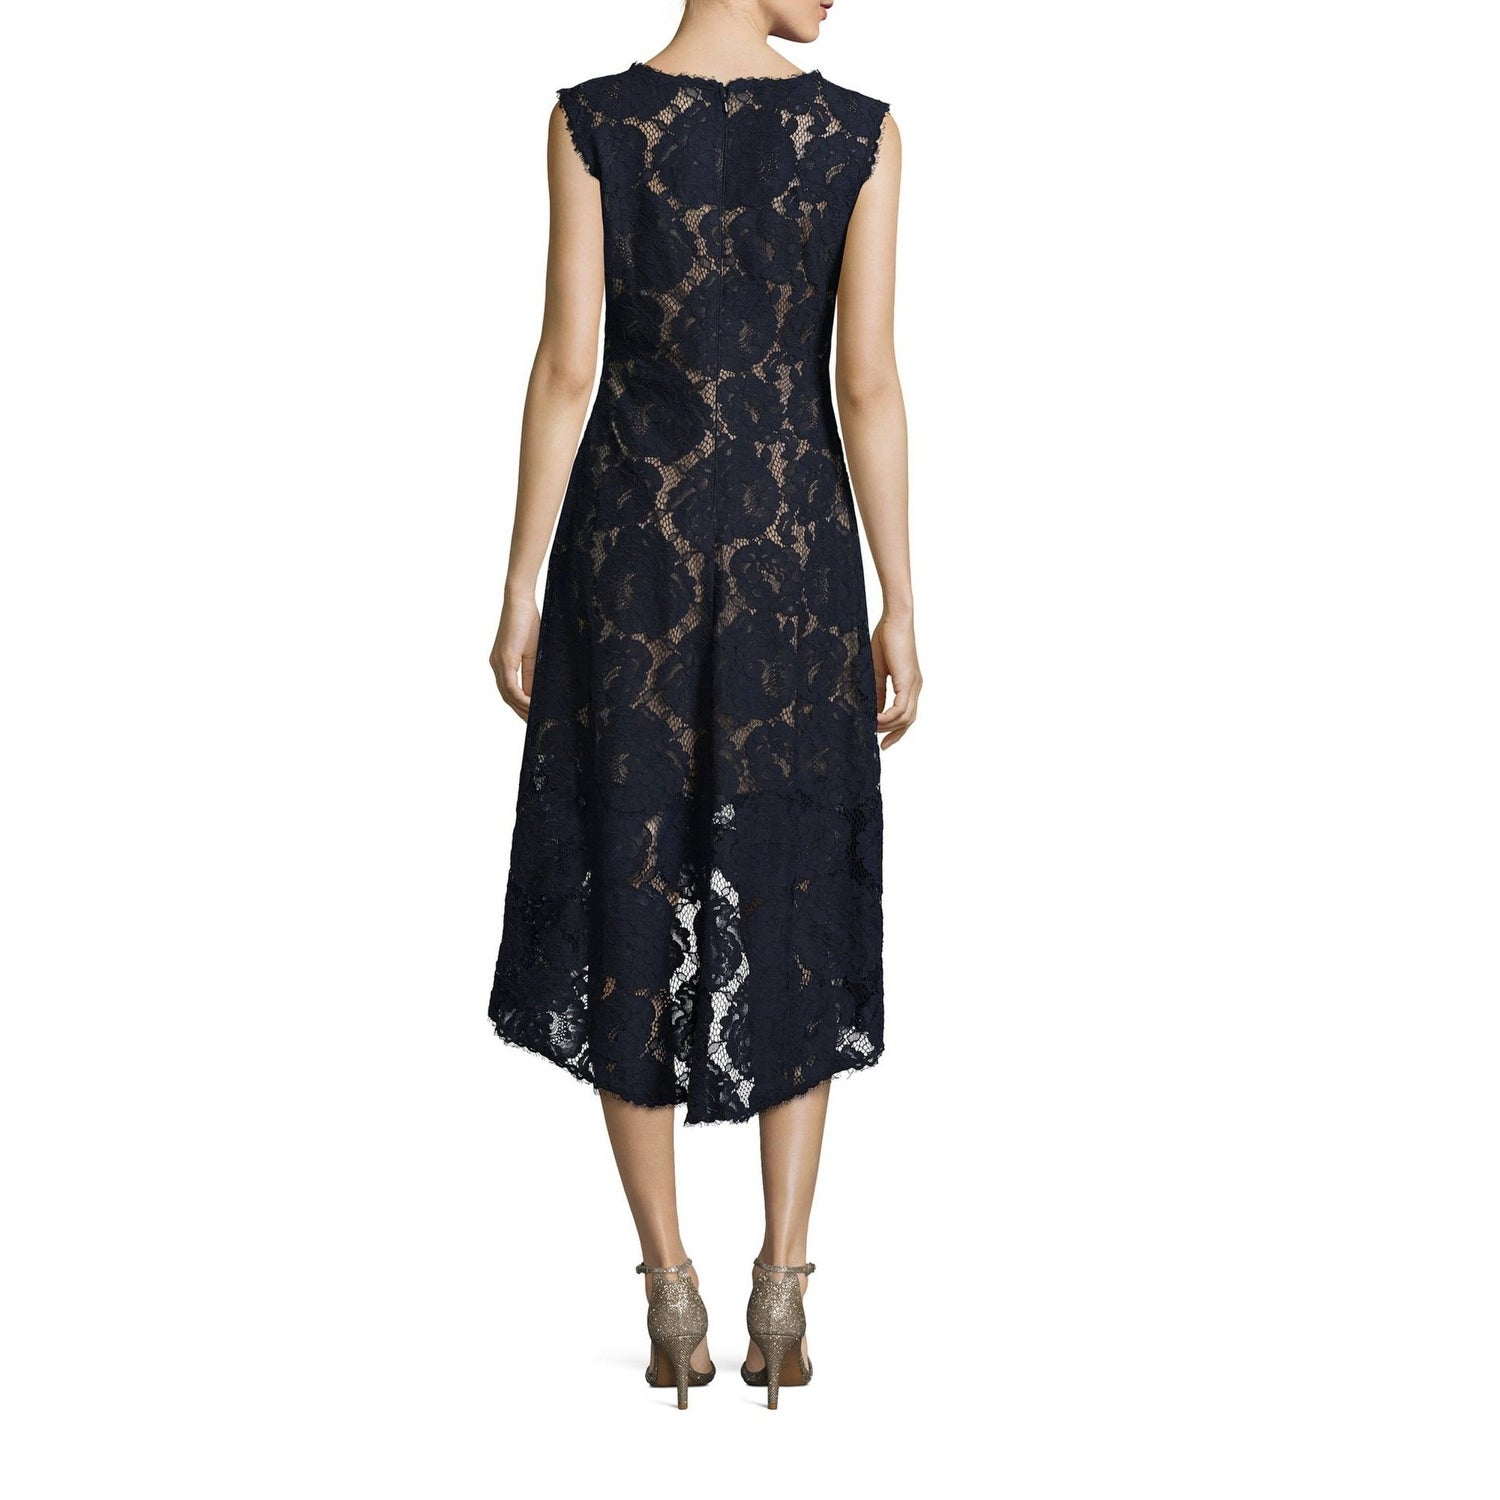 3be25d12f7 Shop Tadashi Shoji High Low V-Neck Lace Cocktail Dress Navy - Free Shipping  Today - Overstock - 25773180